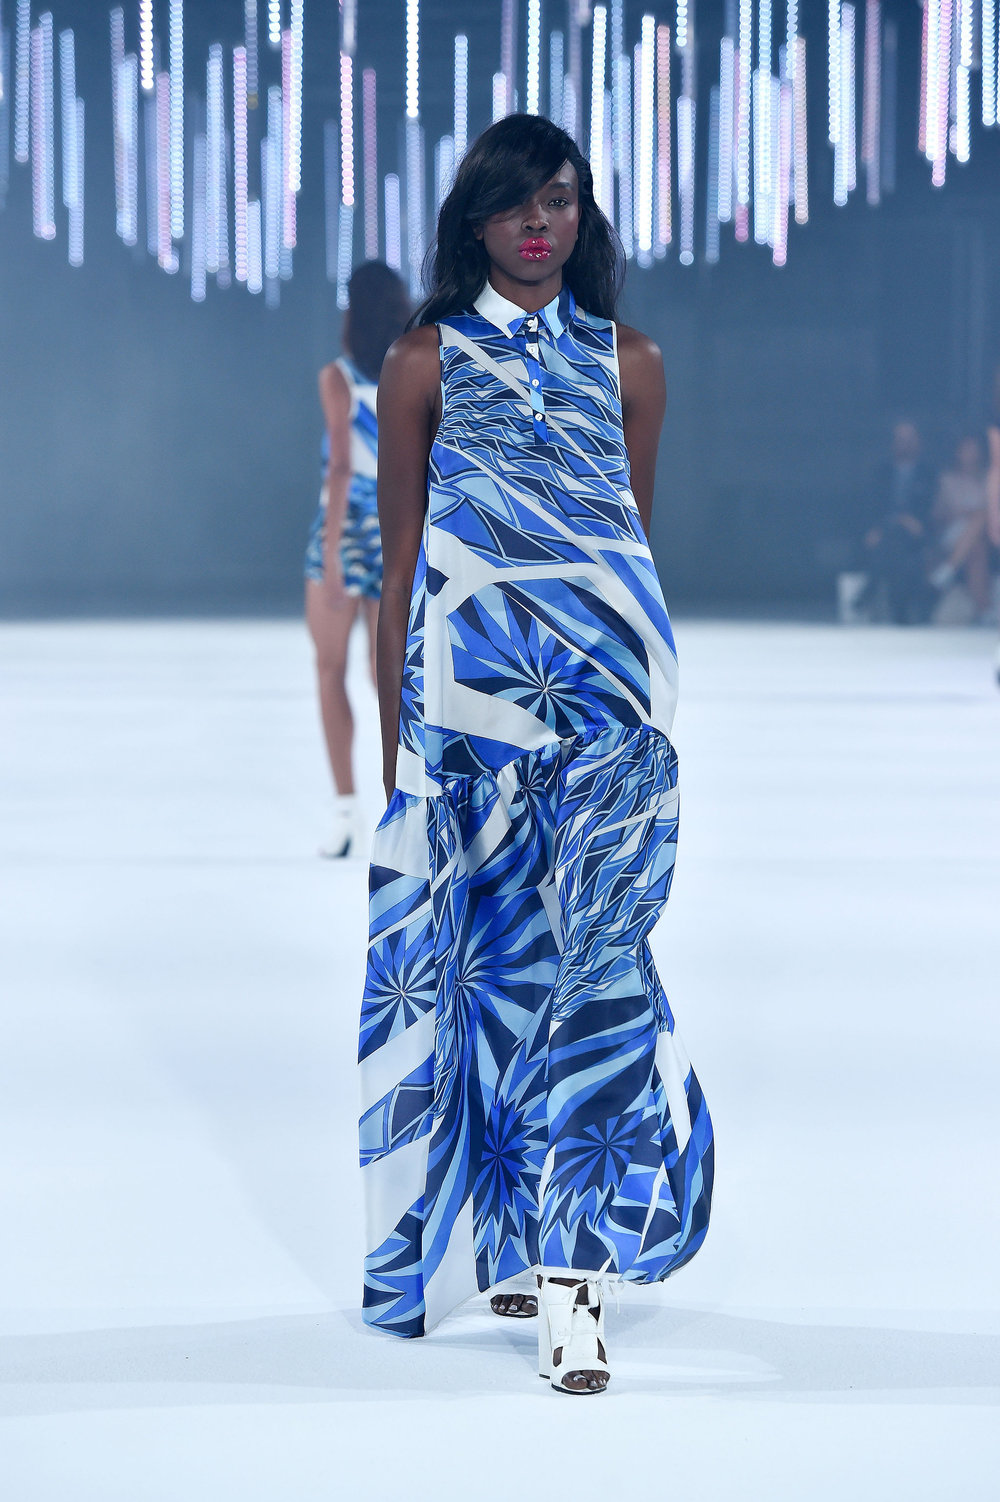 Manning Cartell Spring Summer 2015/16, MBFWA, photo Getty Images